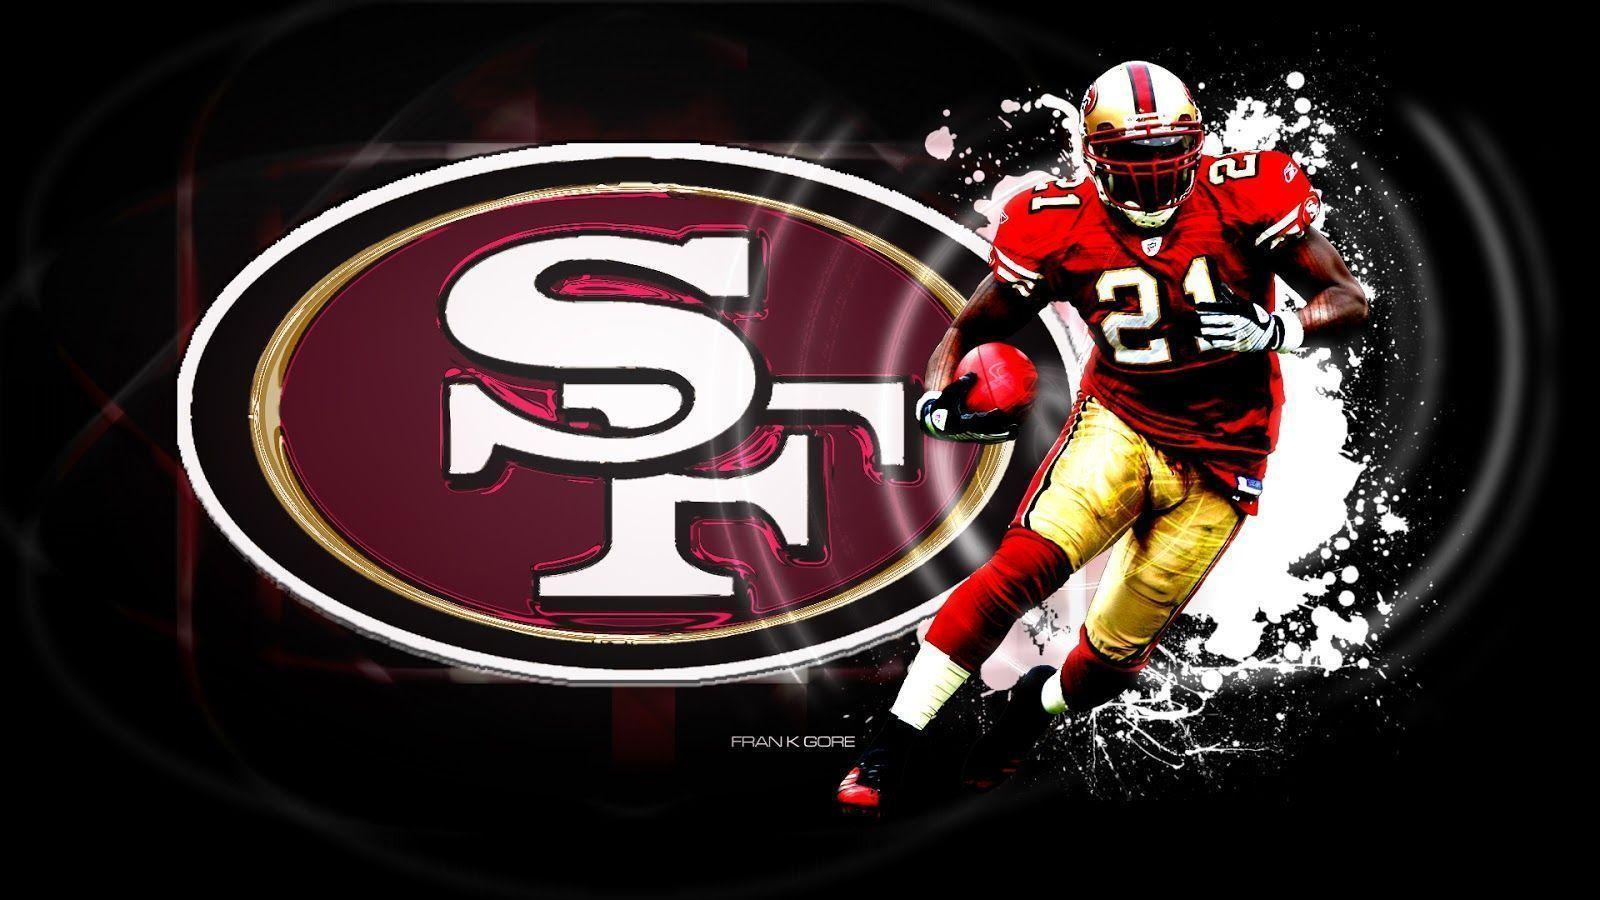 49ers 2016 Schedule Wallpapers - Wallpaper Cave